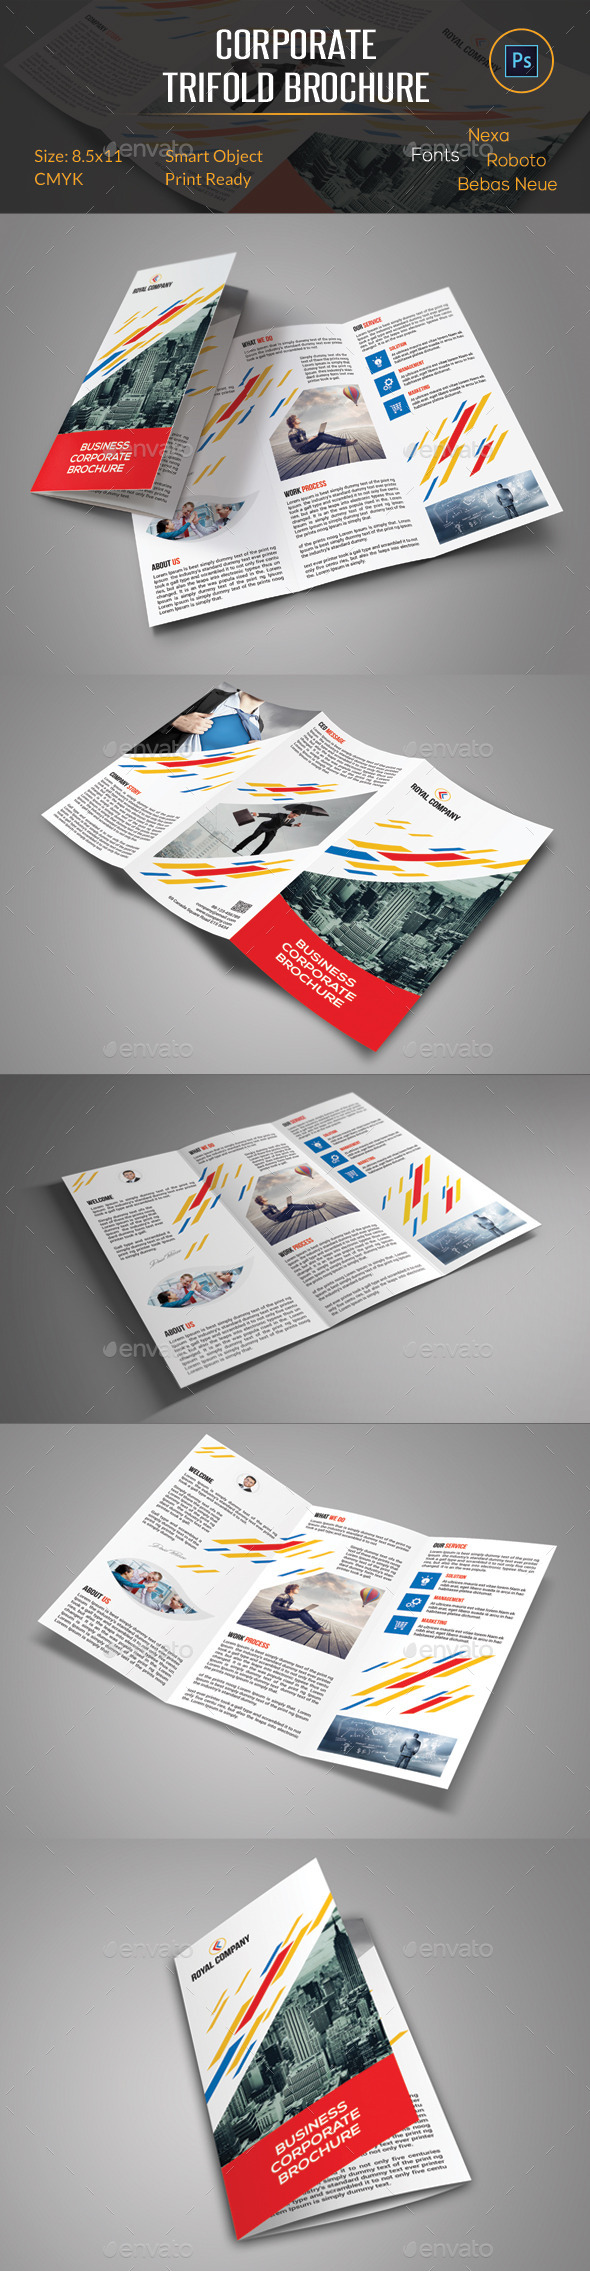 GraphicRiver Corporate Trifold Brochure 11463287